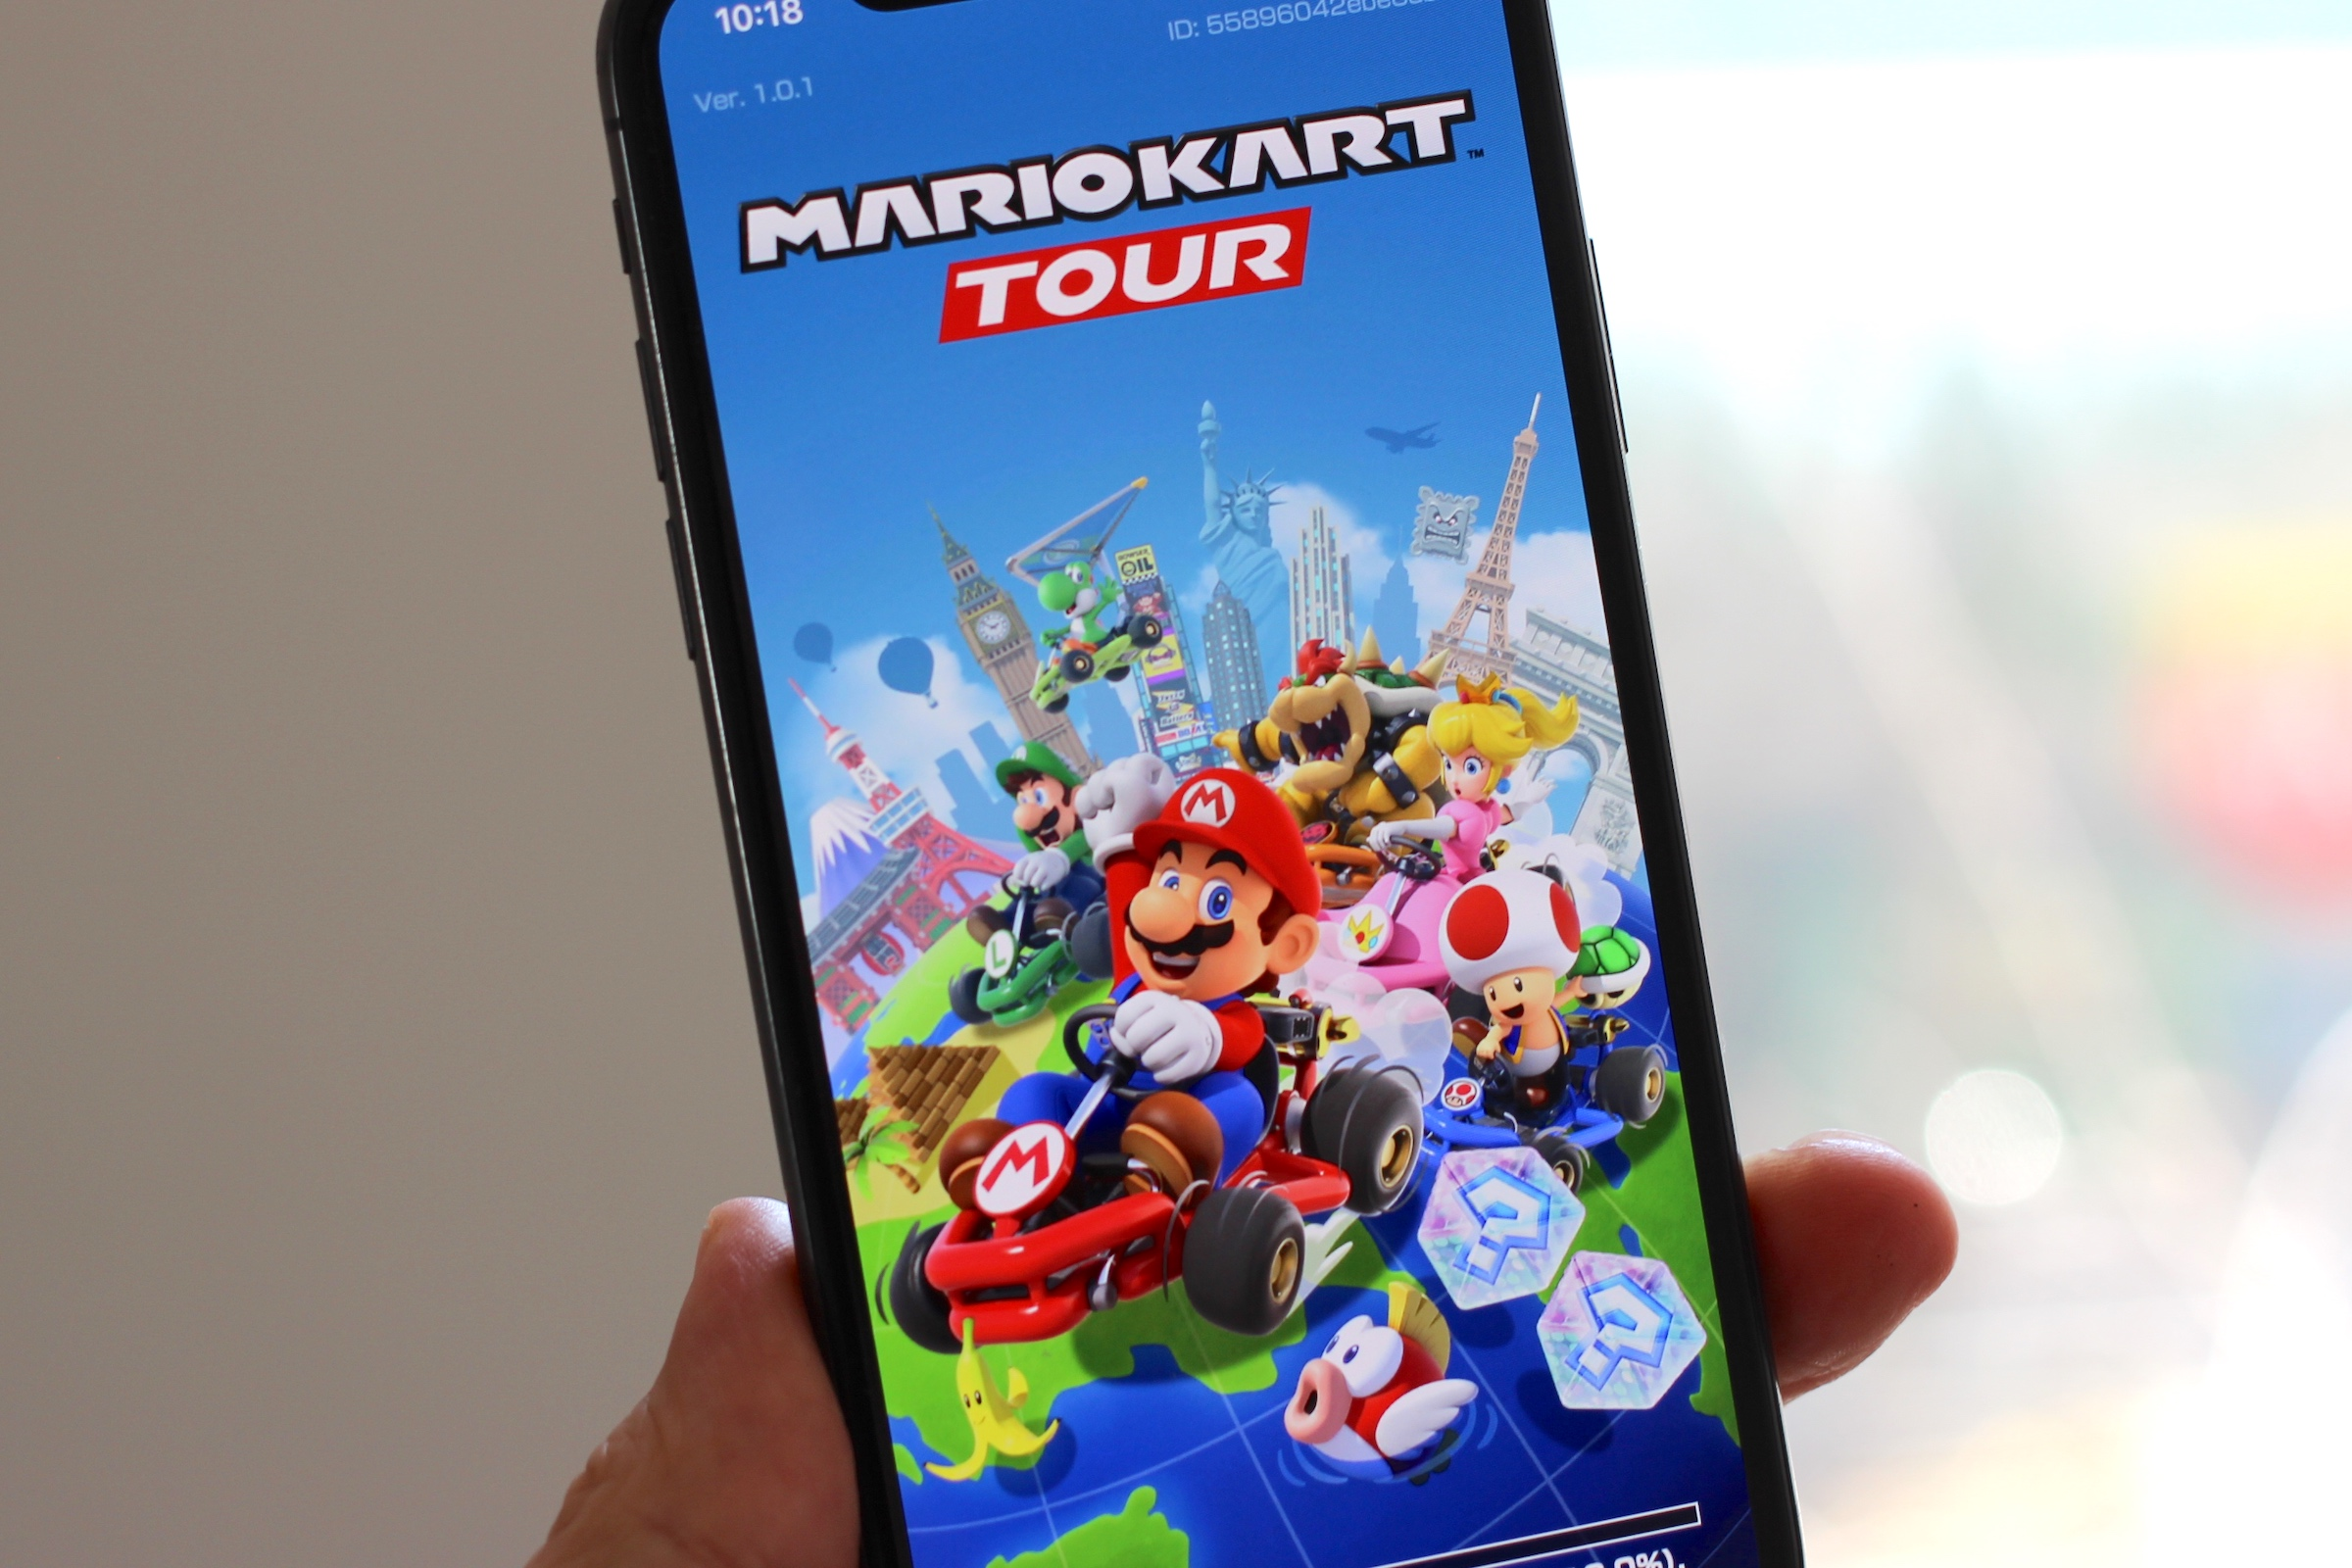 Mario Kart Tour review: Mario Kart just doesn't feel right on a phone